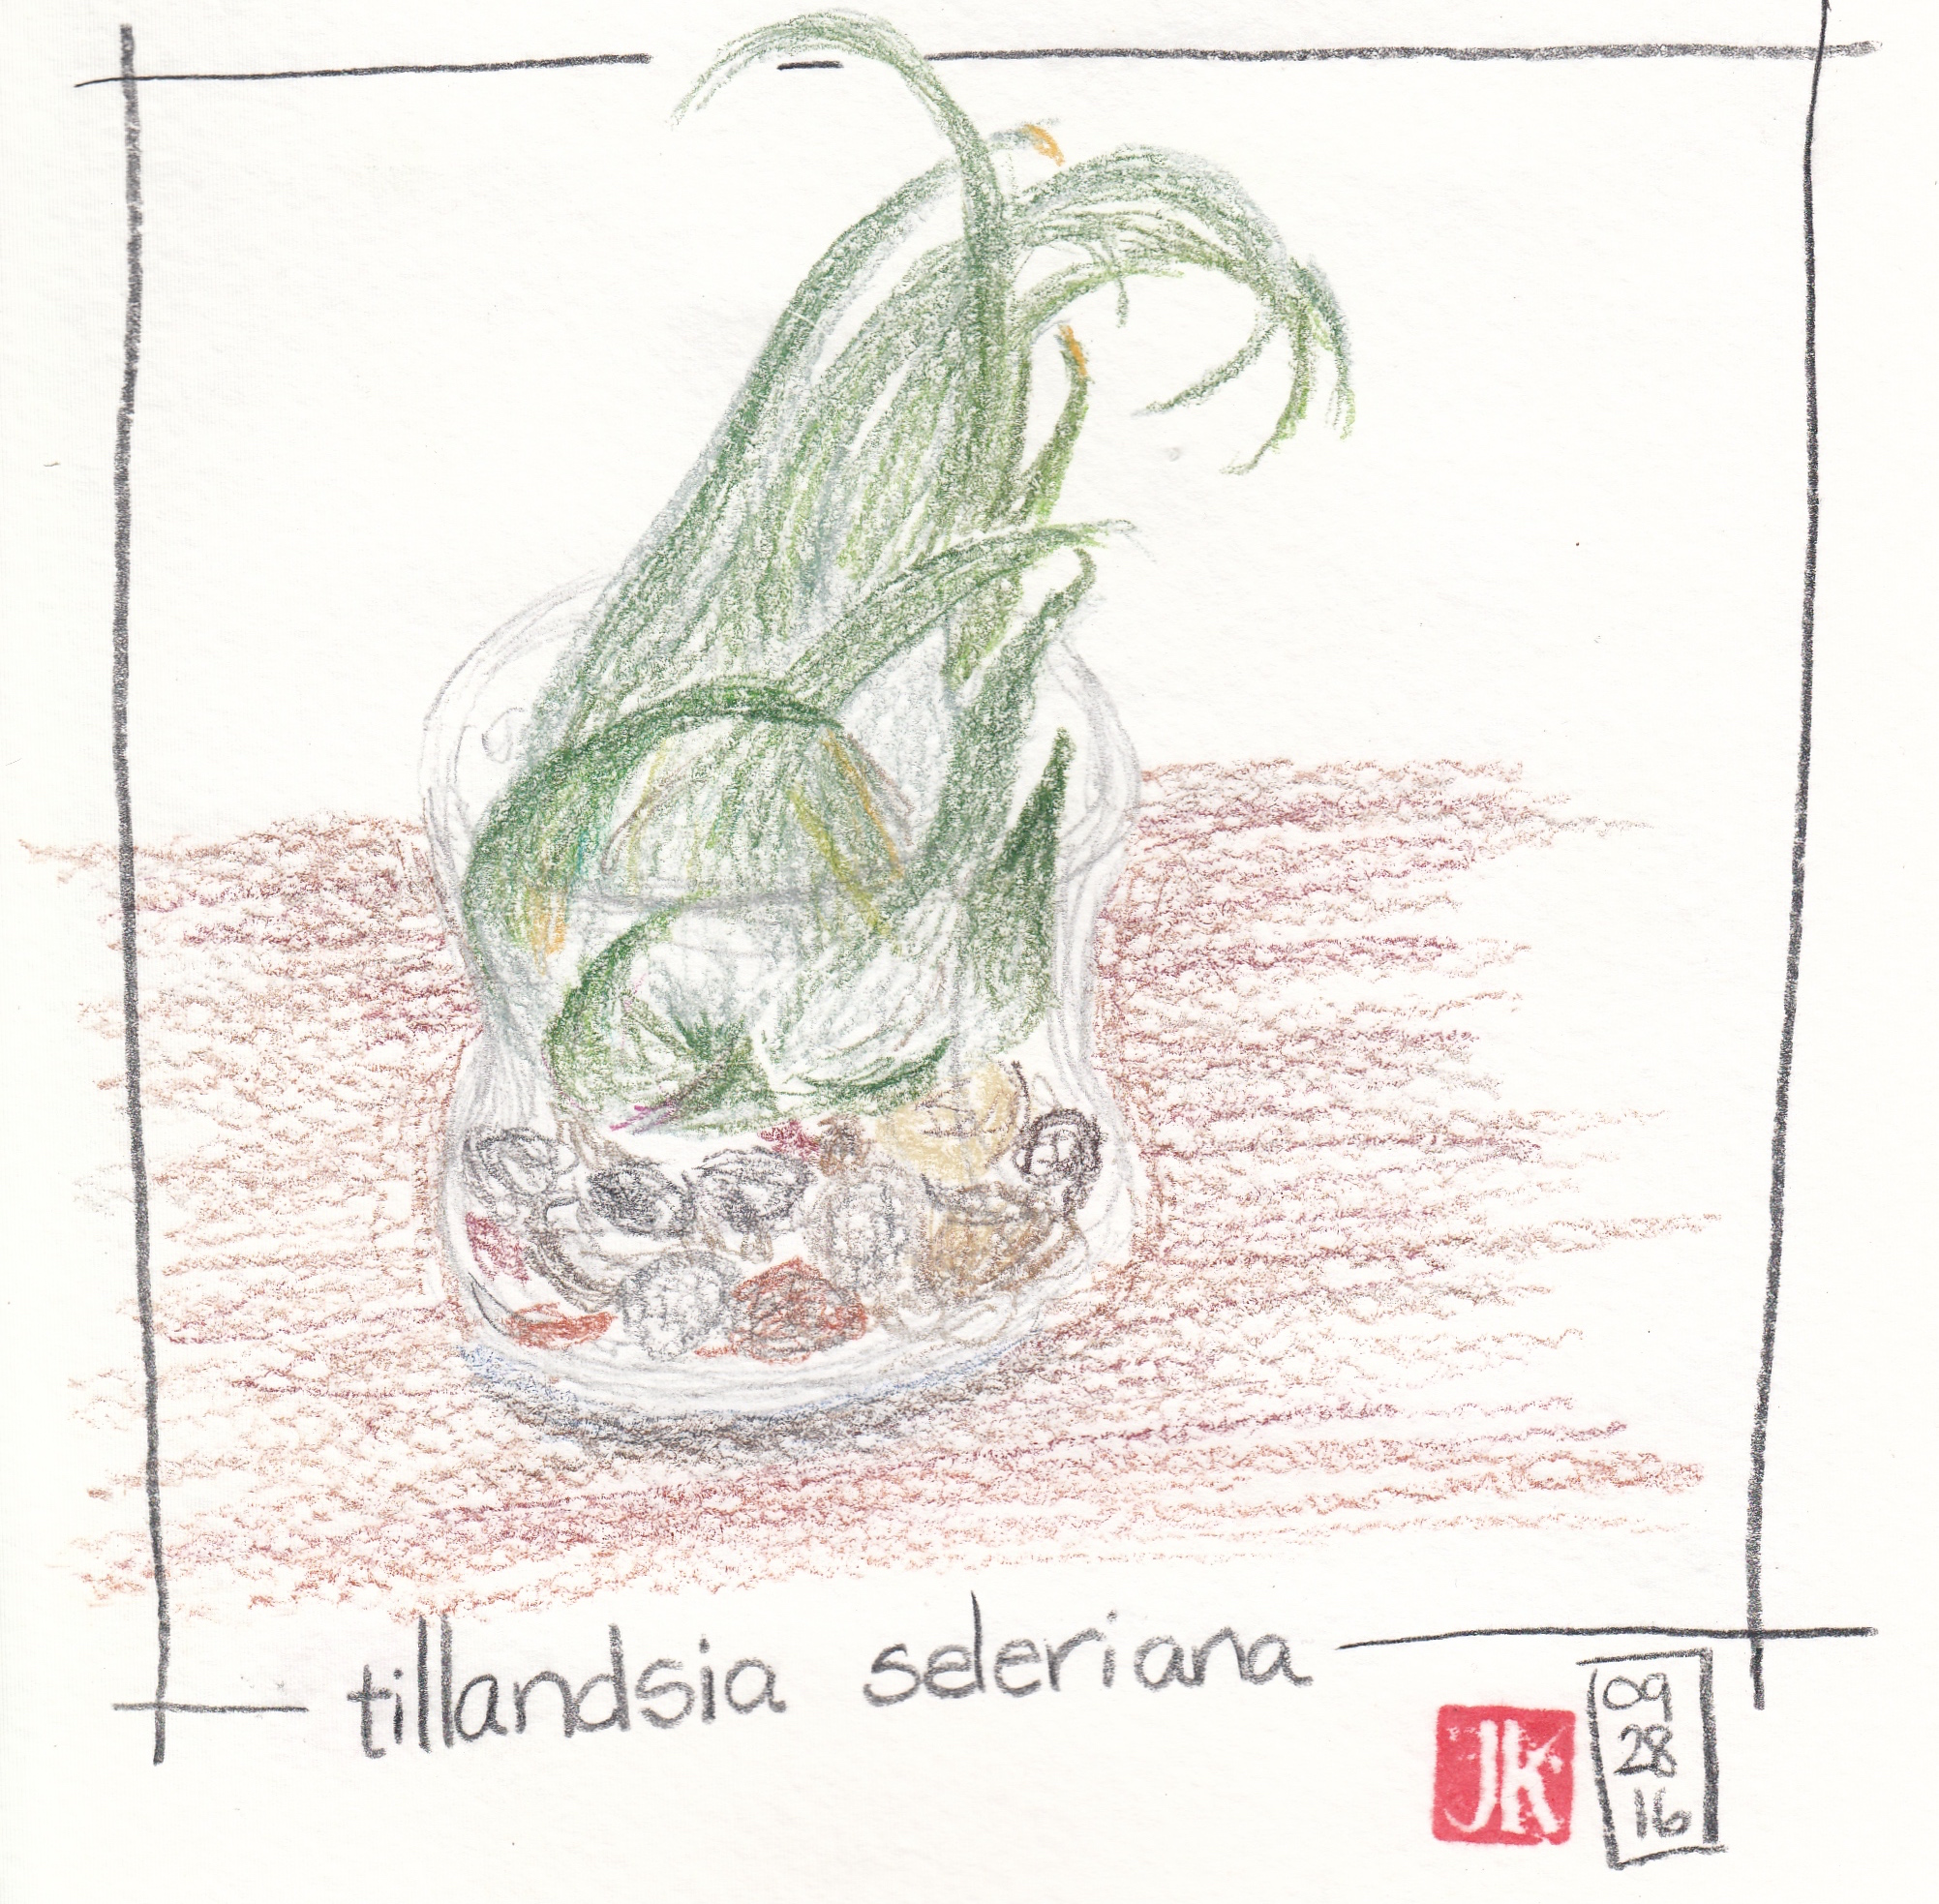 My air plant in color pencil